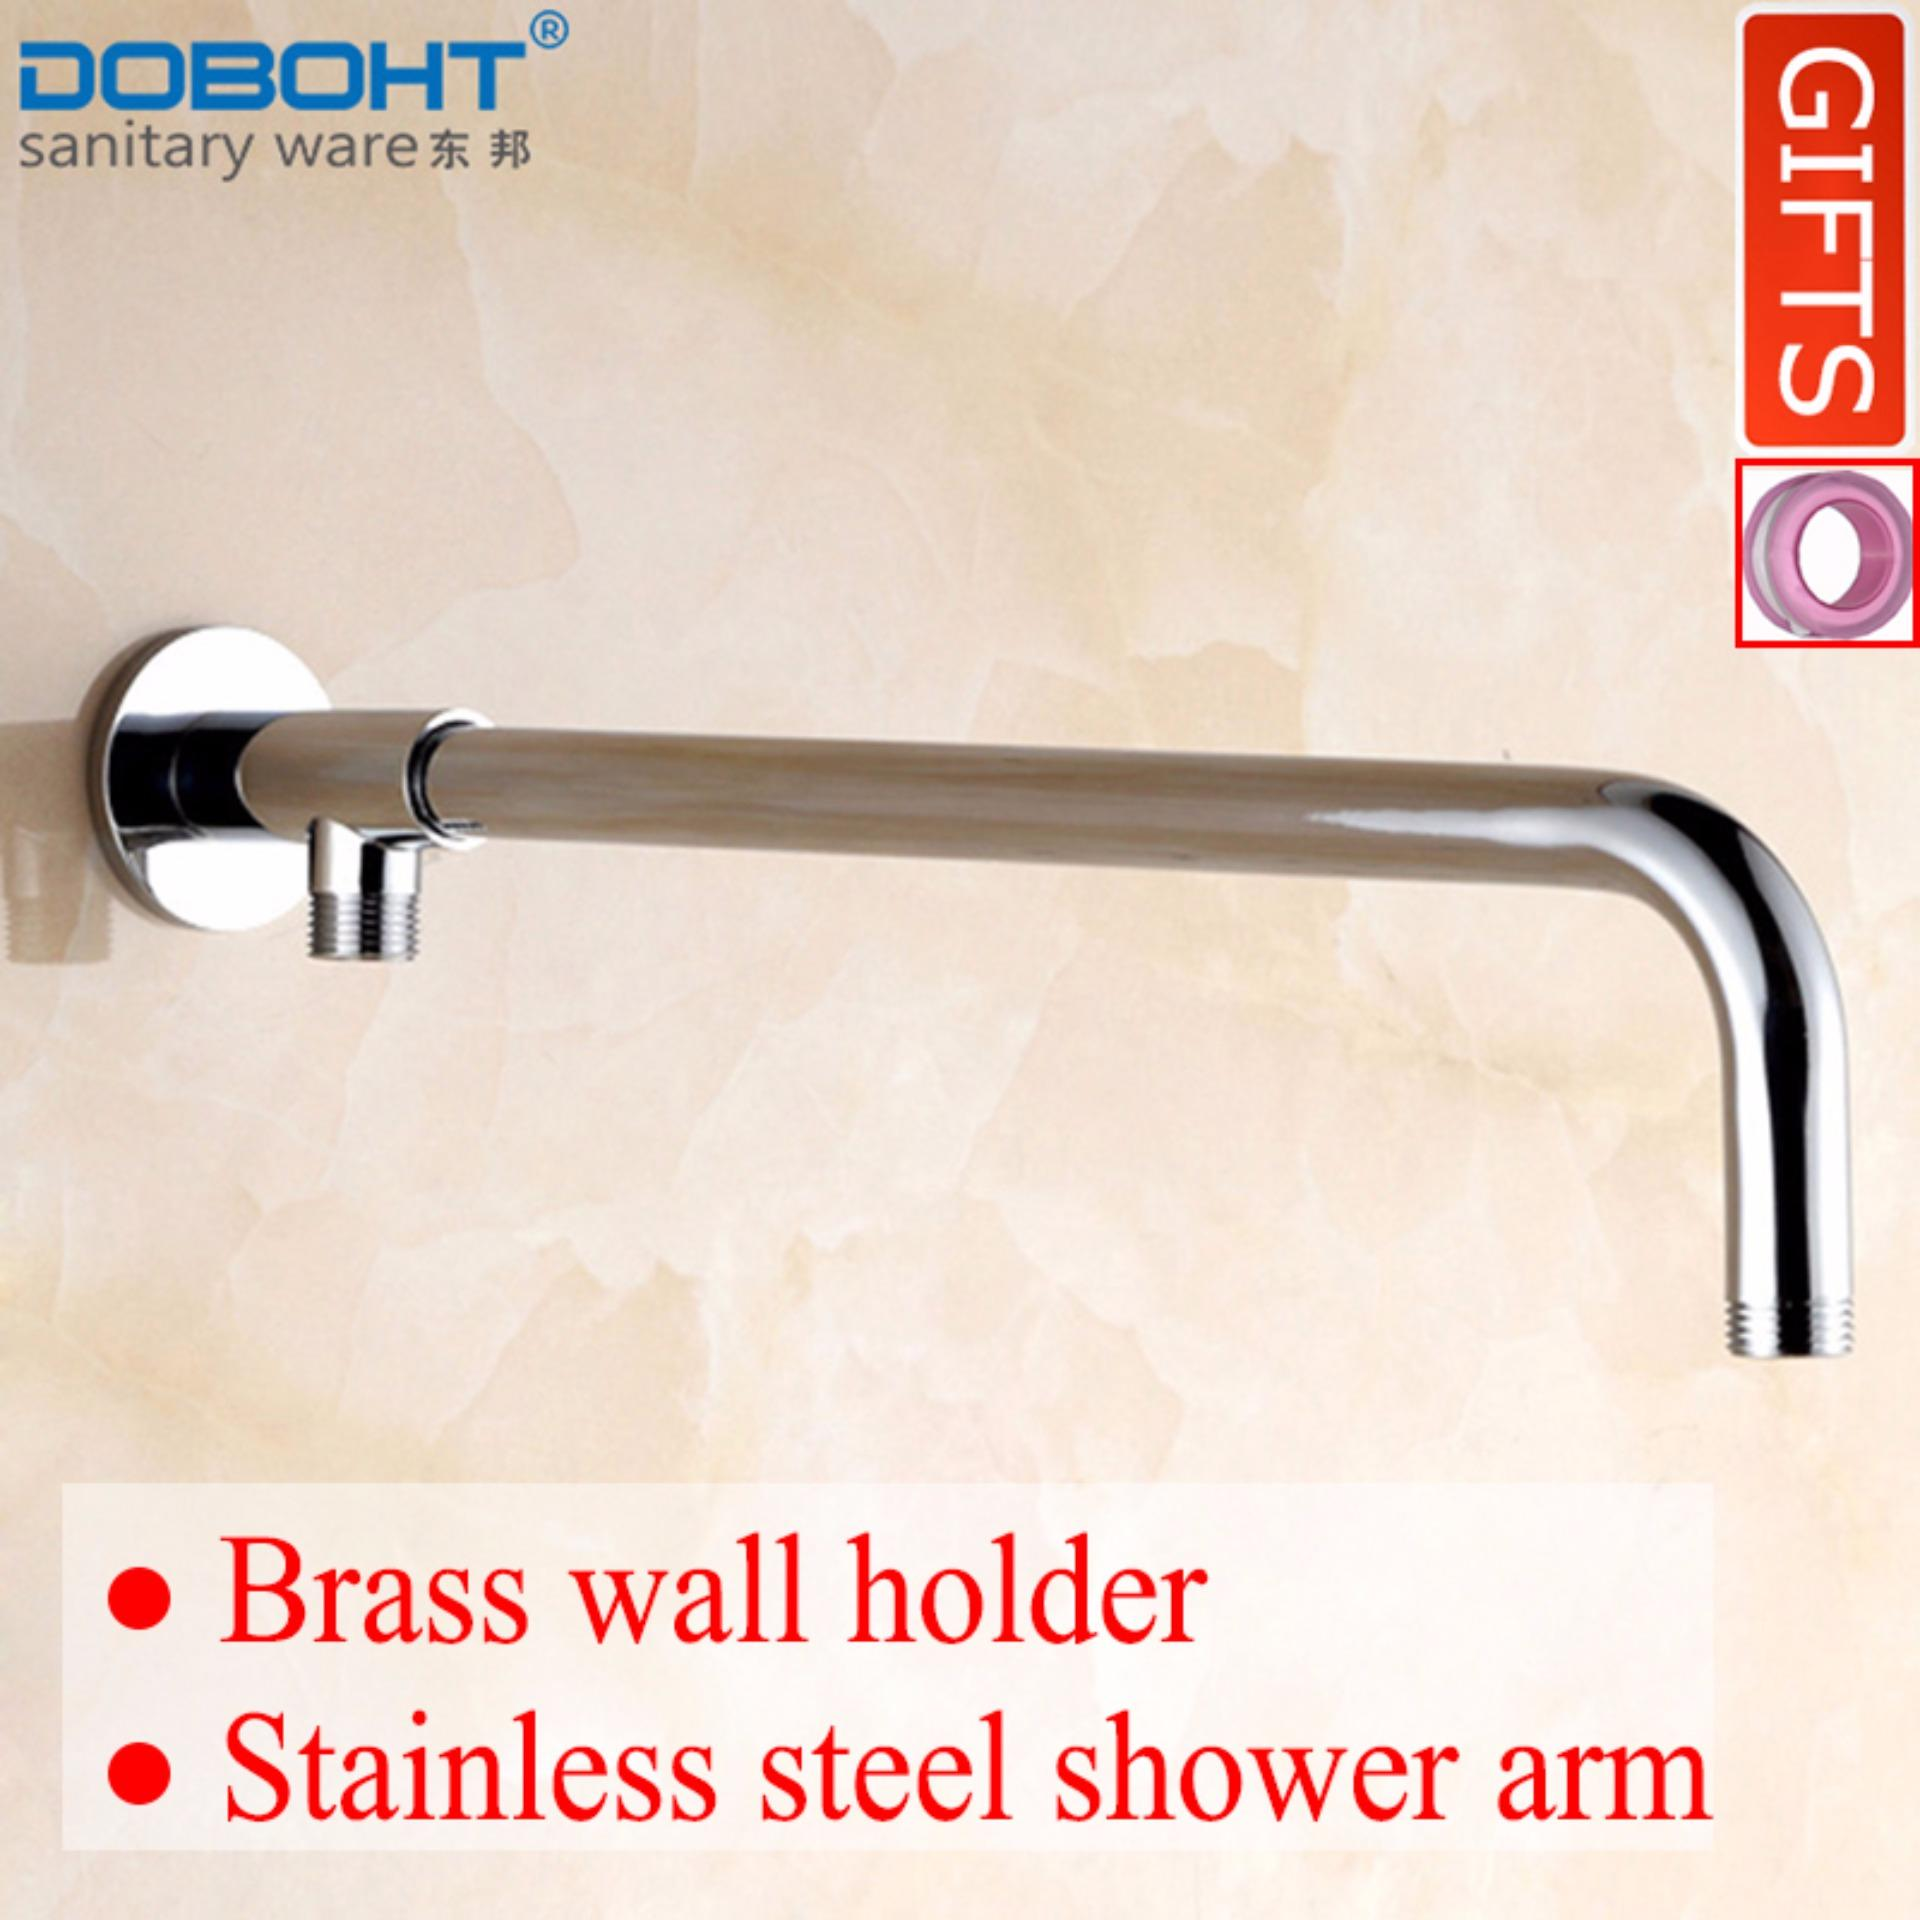 Discount Doboht Stainless Steel Bathroom Home 40Cm Shower Head Arms Chrome Export